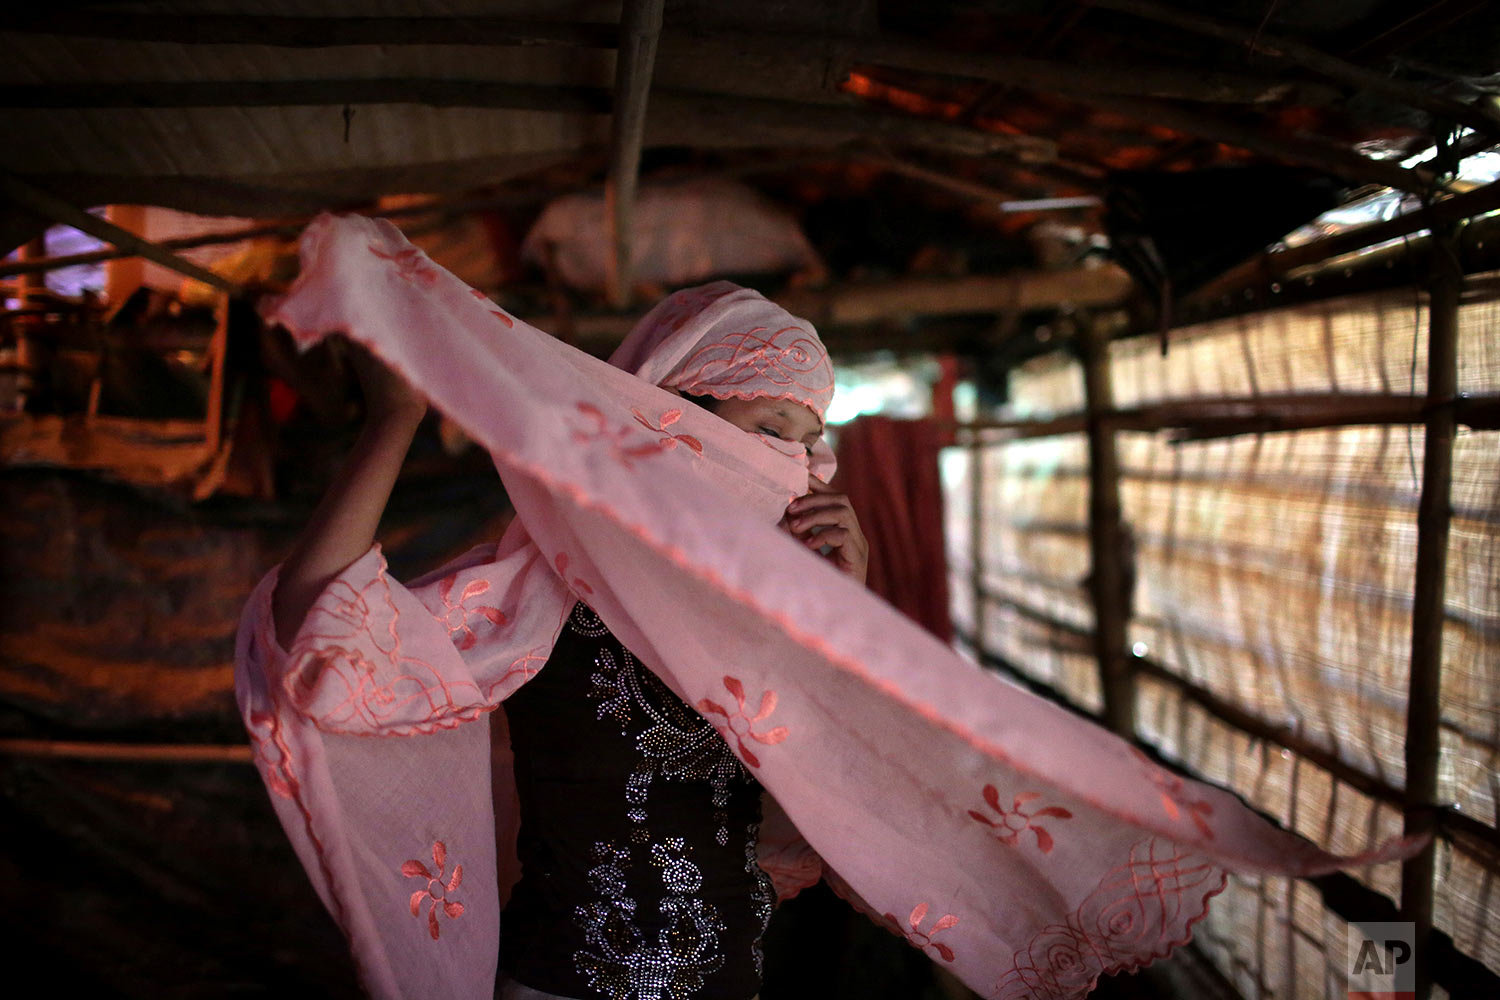 In this Sunday, Nov. 19, 2017, photo, R, 13, who says she was raped by members of Myanmar's armed forces in late August, adjusts her headscarf while photographed in her family's tent in Kutupalong refugee camp in Bangladesh. (AP Photo/Wong Maye-E)